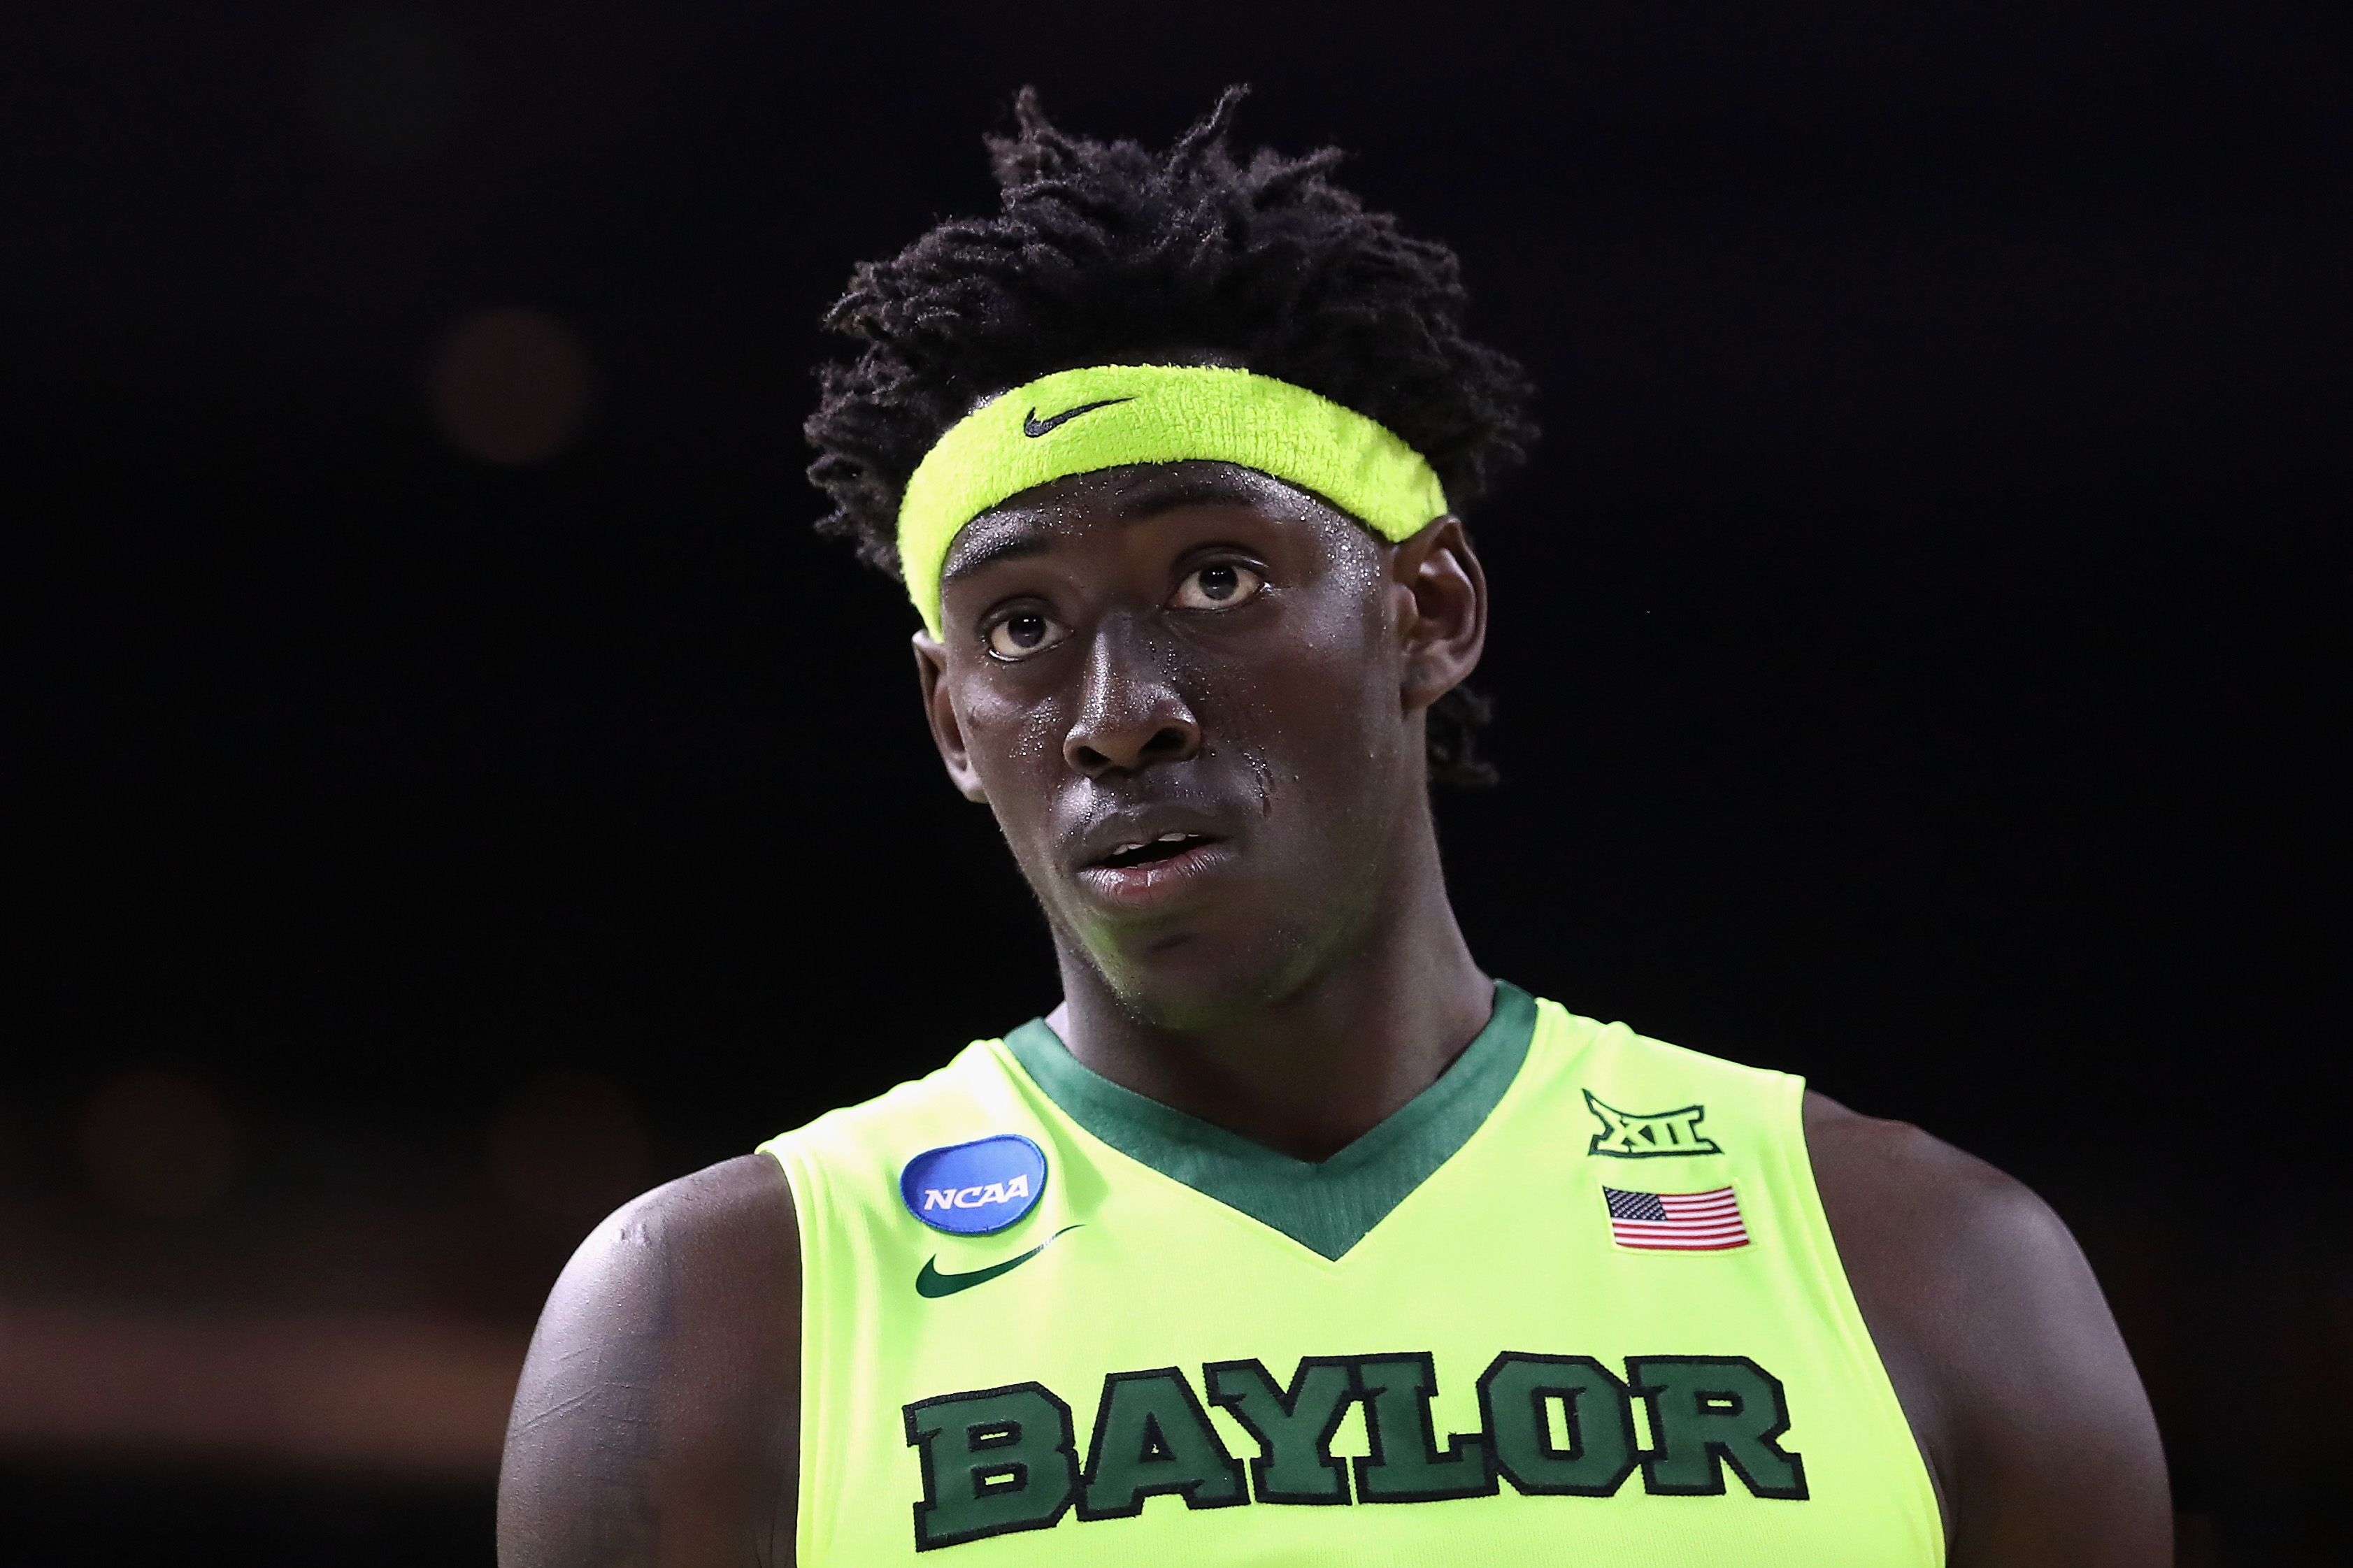 PROVIDENCE, RI - MARCH 17: Johnathan Motley #5 of the Baylor Bears looks on in the second half against the Yale Bulldogs during the first round of the 2016 NCAA Men's Basketball Tournament at Dunkin' Donuts Center on March 17, 2016 in Providence, Rhode Island. (Photo by Maddie Meyer/Getty Images)